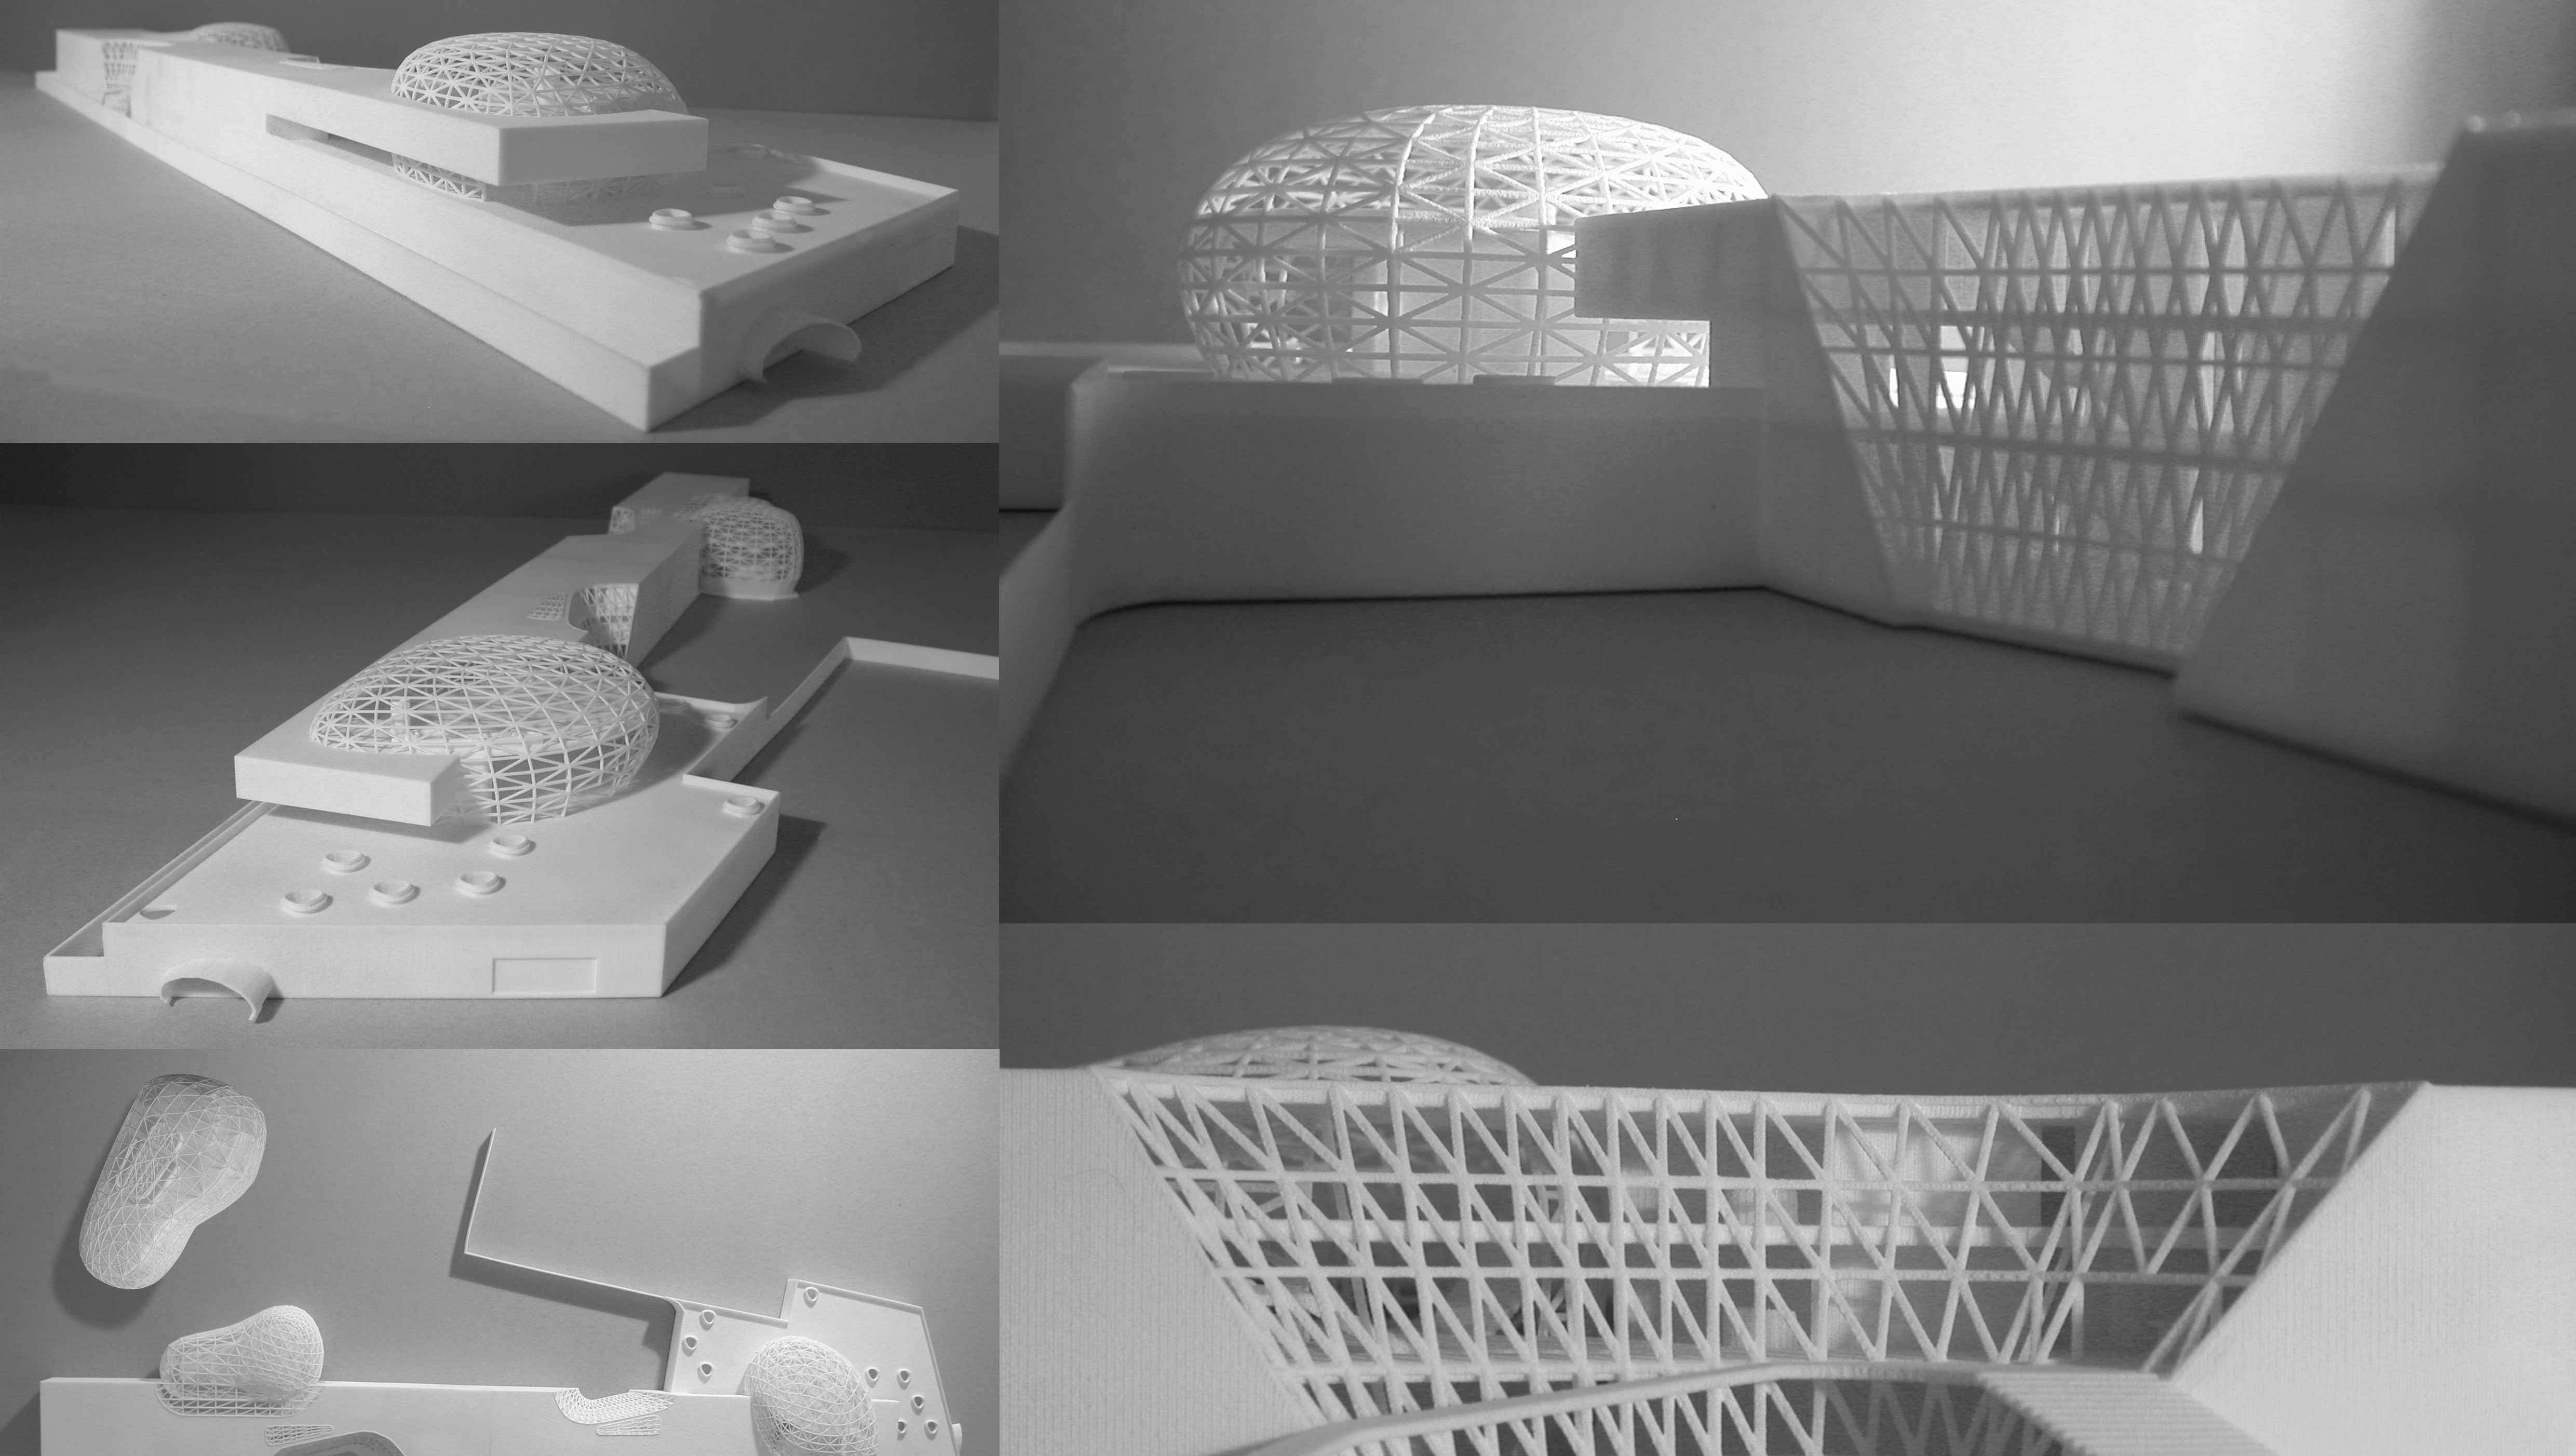 19_modell 1_200_prototyping